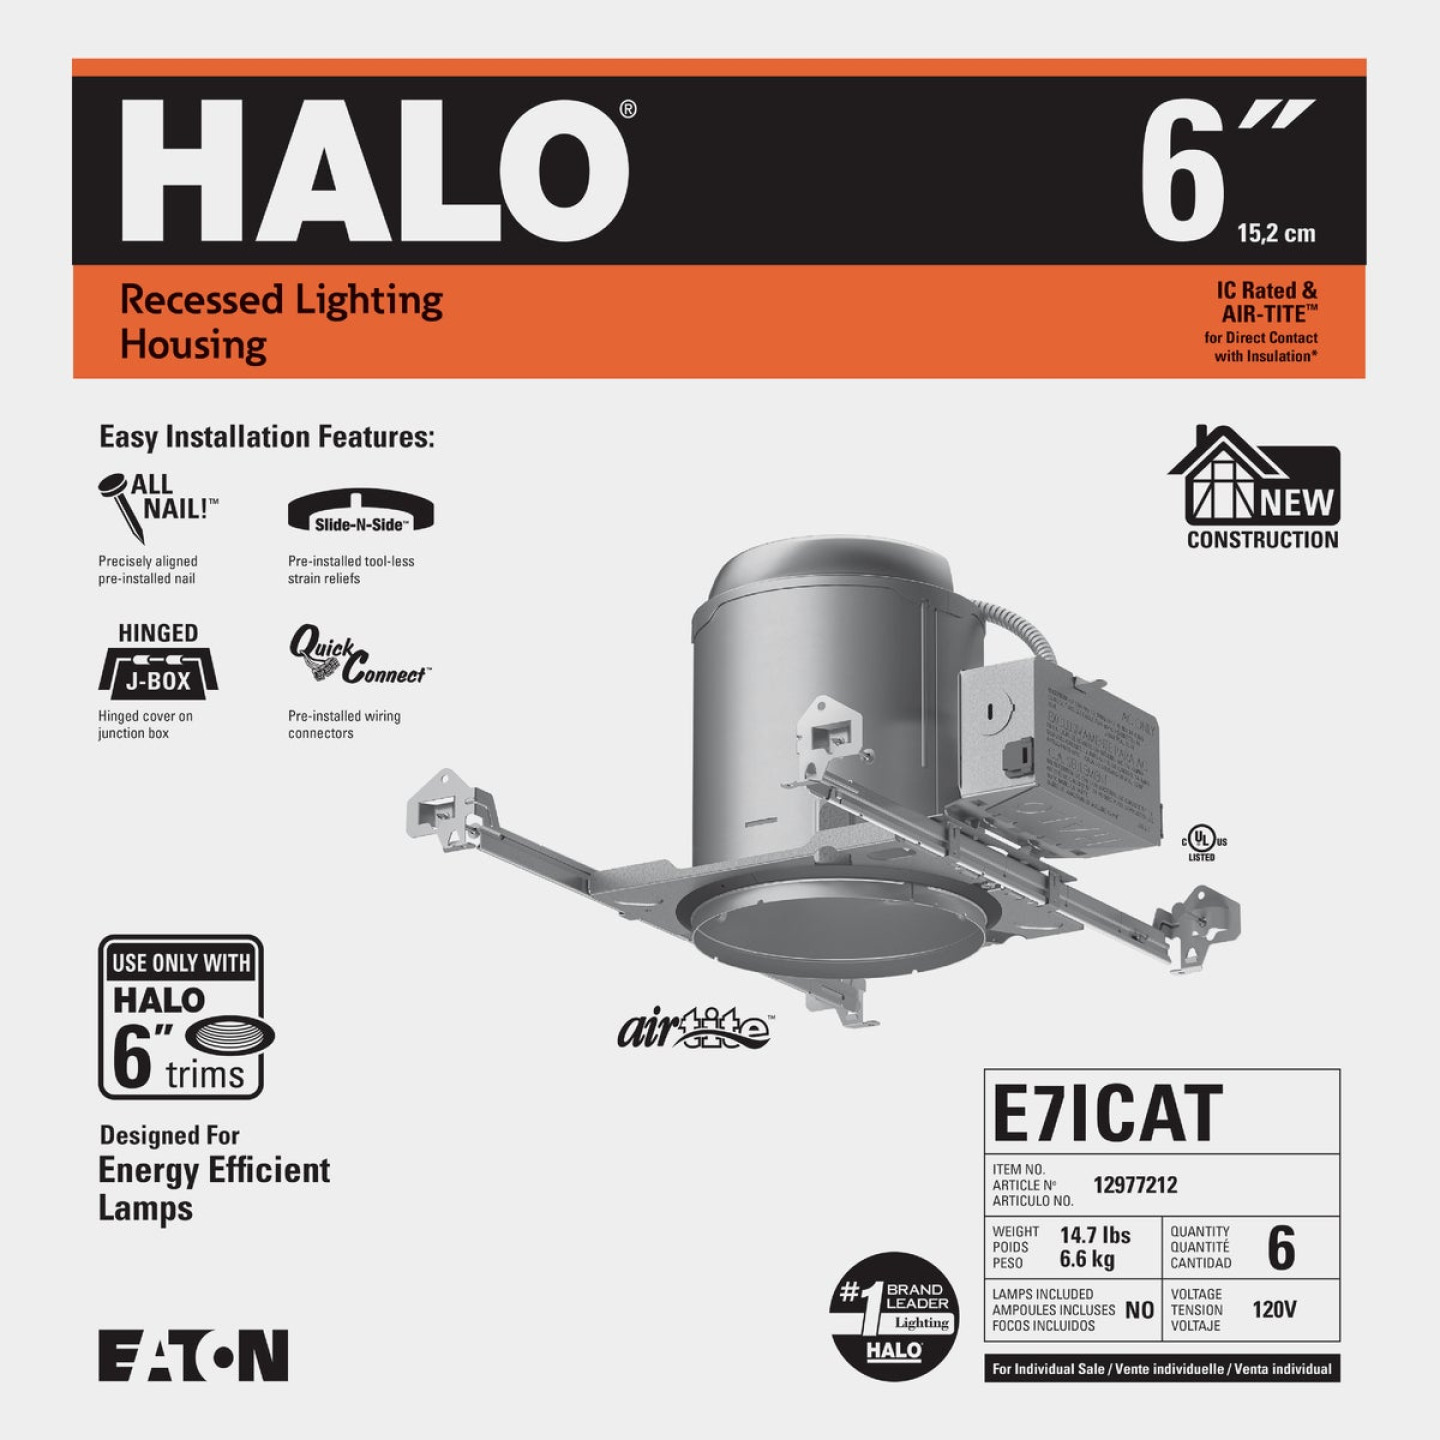 Halo Air-Tite 6 In. New Construction IC/Non-IC Rated Recessed Light Fixture Image 2